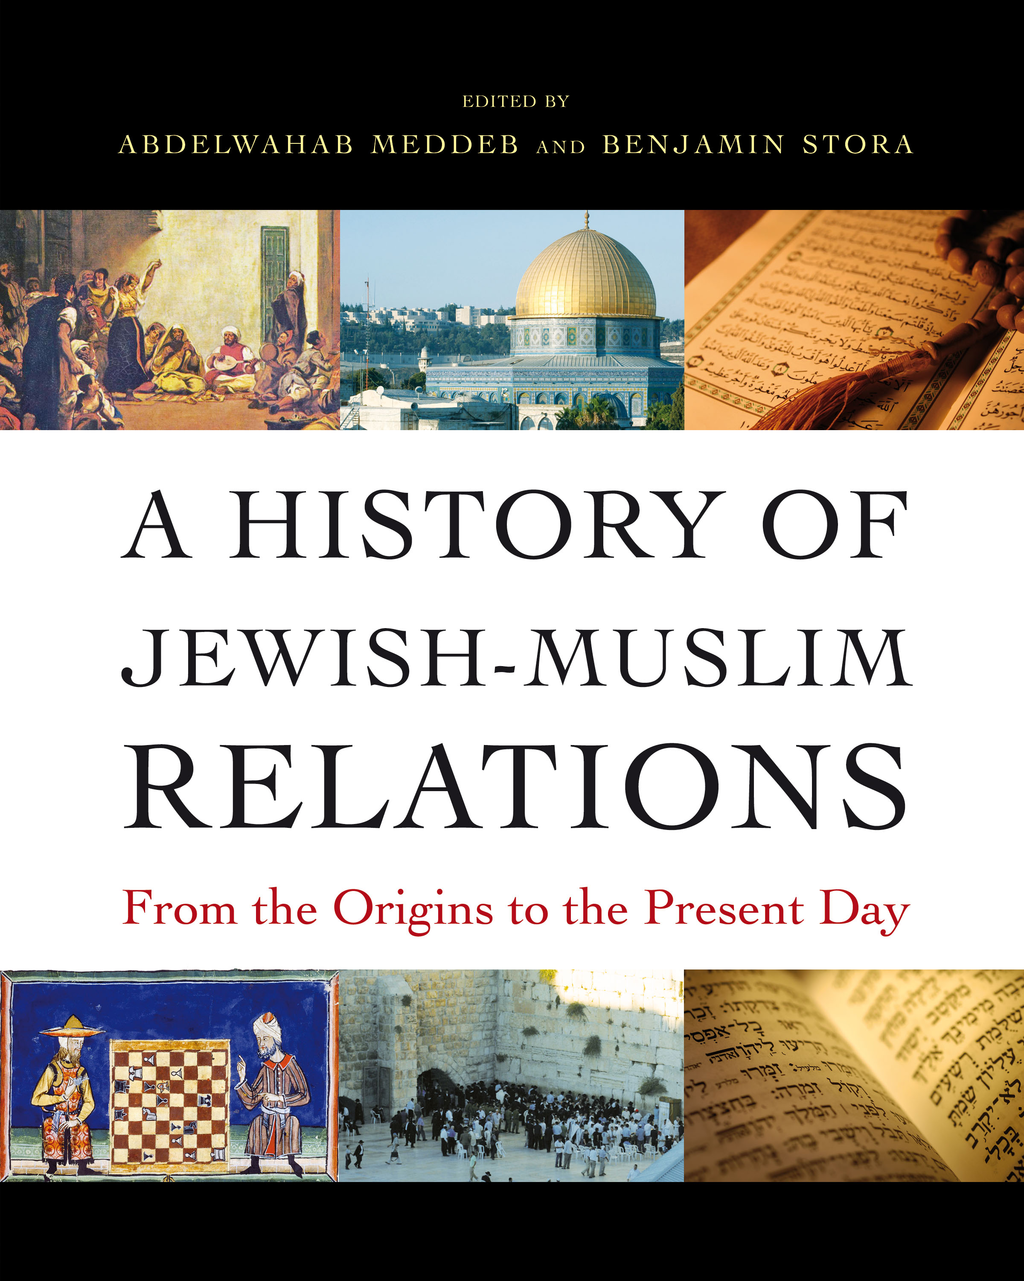 A History of Jewish-Muslim Relations From the Origins to the Present Day